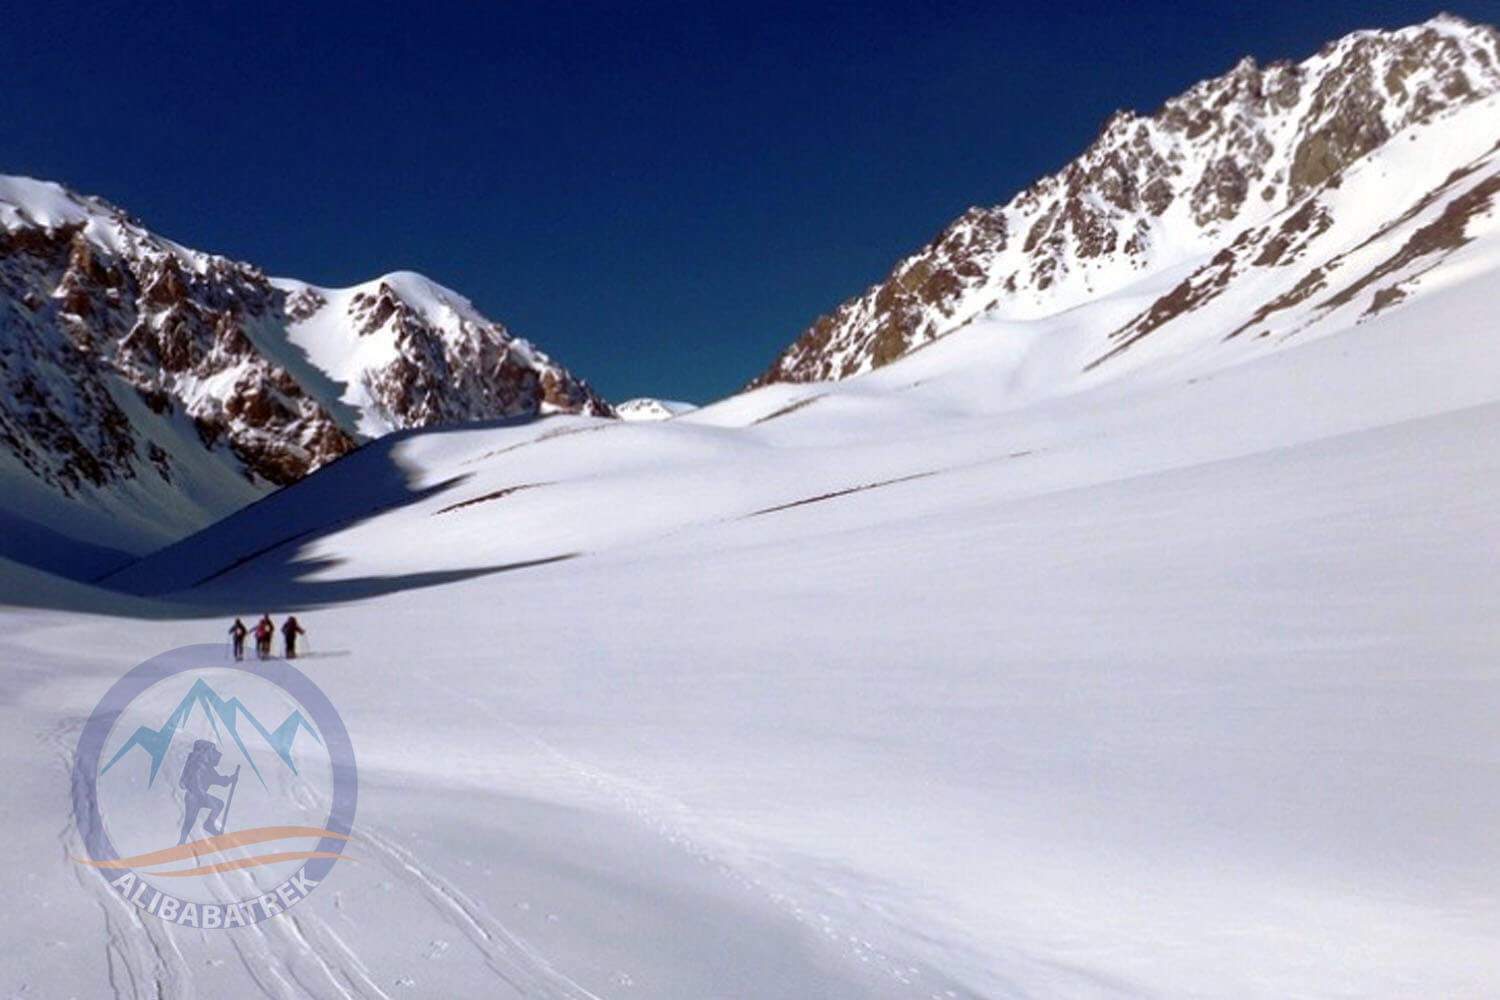 Alibabatrek iran tour Packages skiing in Iran ski touring iran ski mountaineering iran back country skiing ski alamkuh alamkuh ski tour alamkuh ski touring iran ski deals iran wild ski